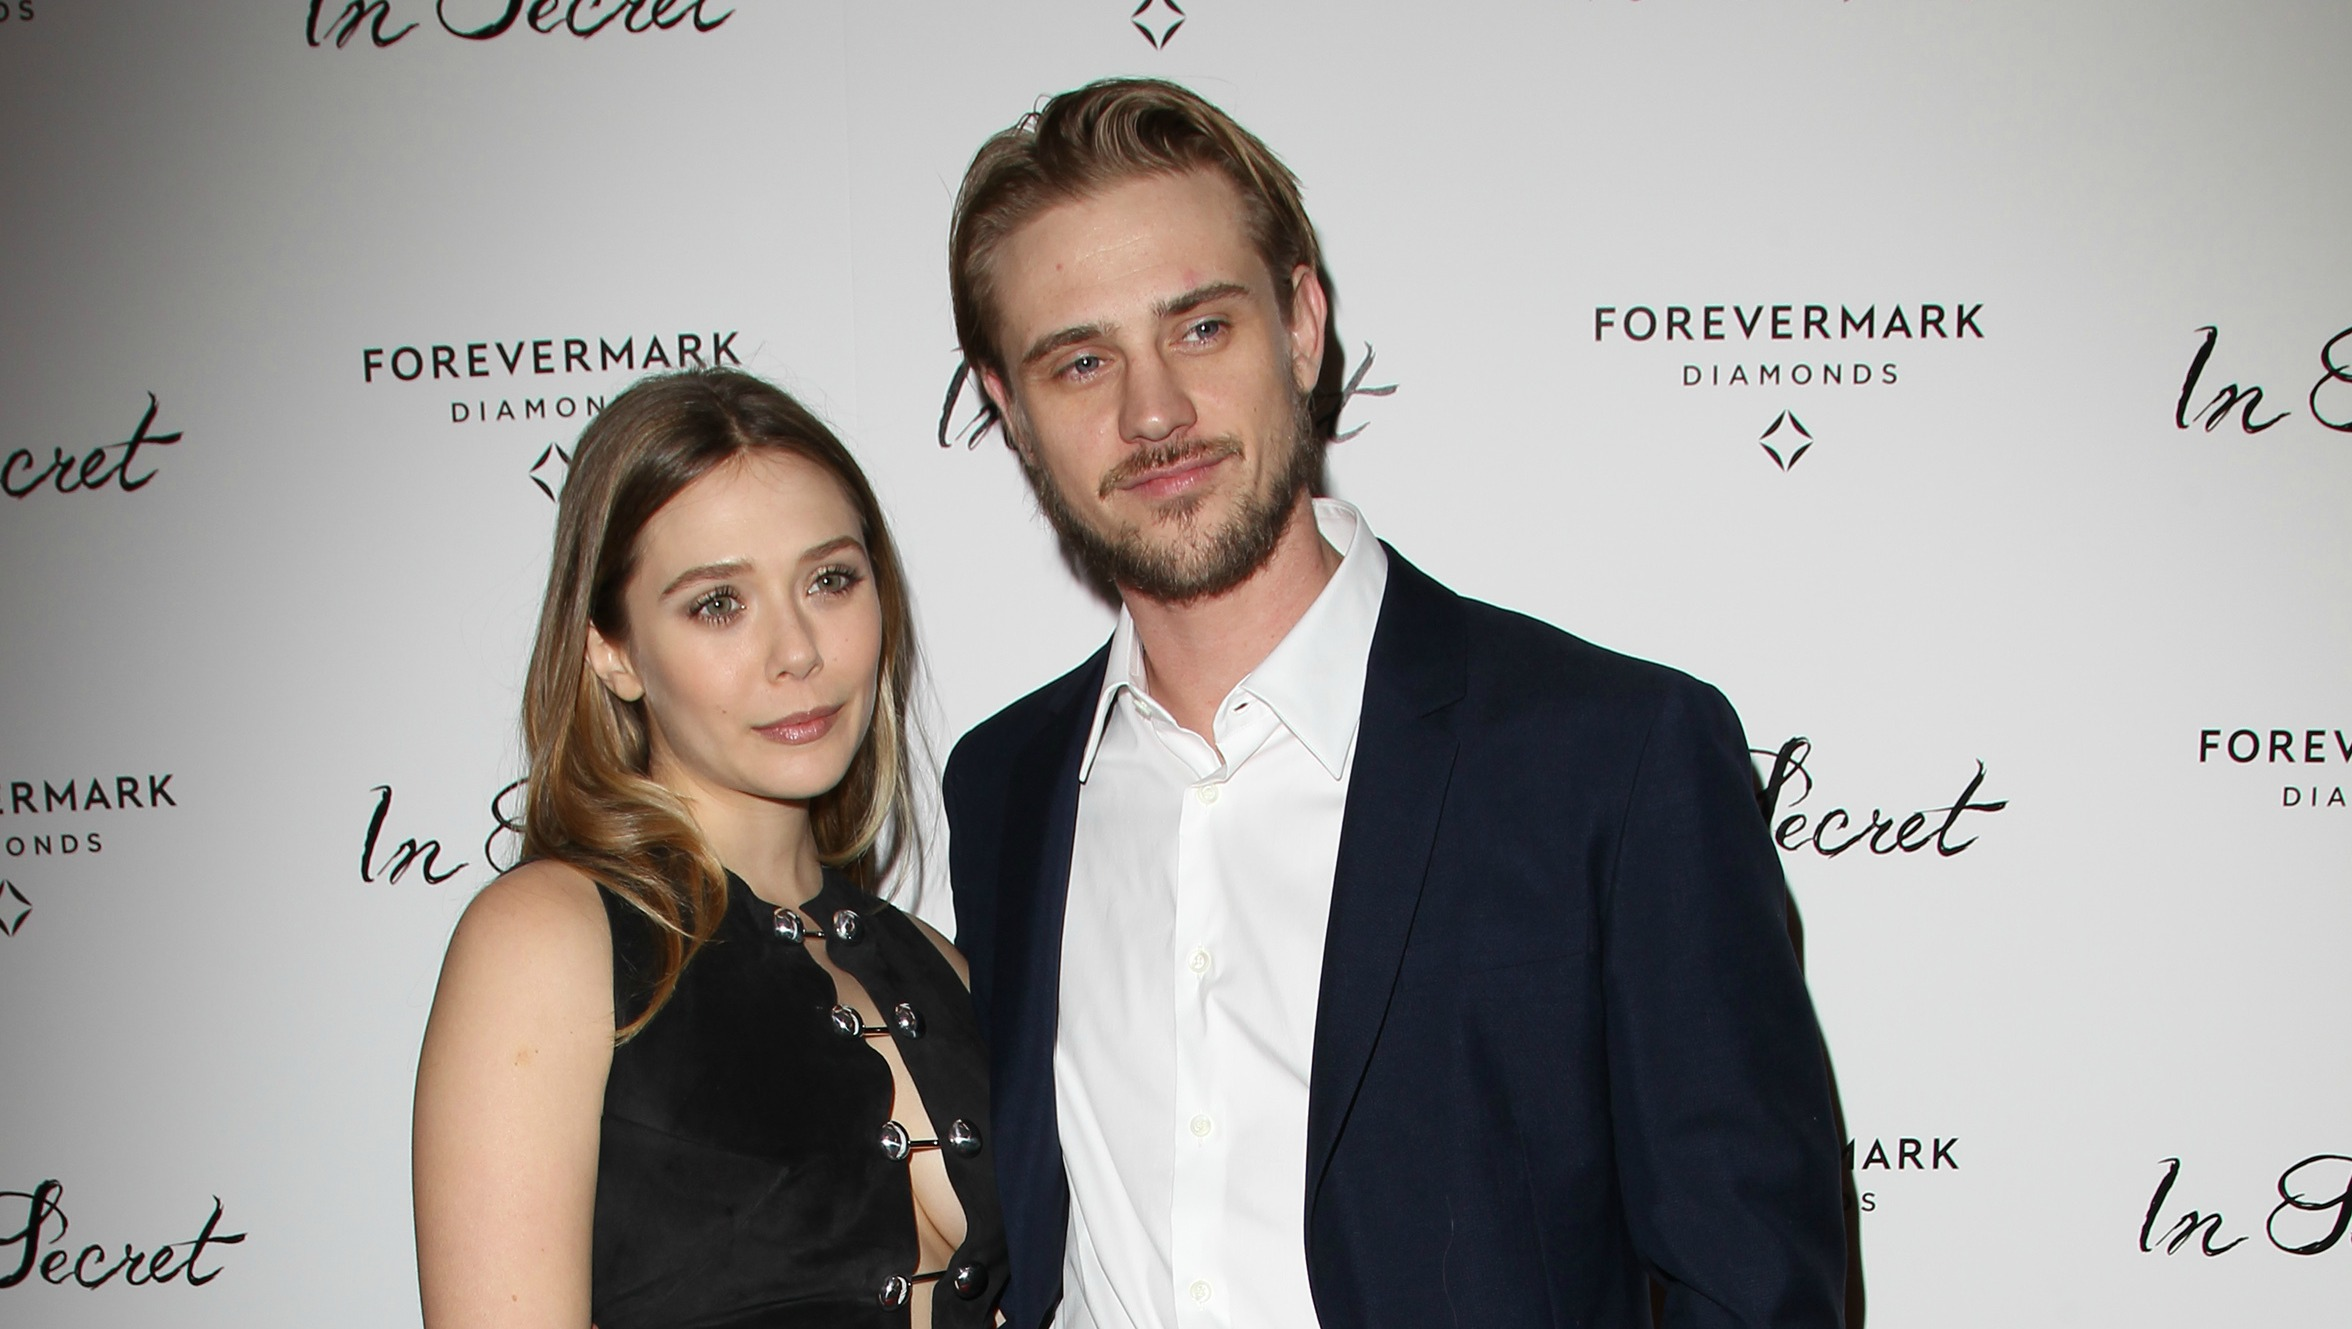 Elizabeth Olsen reveals wedding plans and thoughts on family to Marie Claire